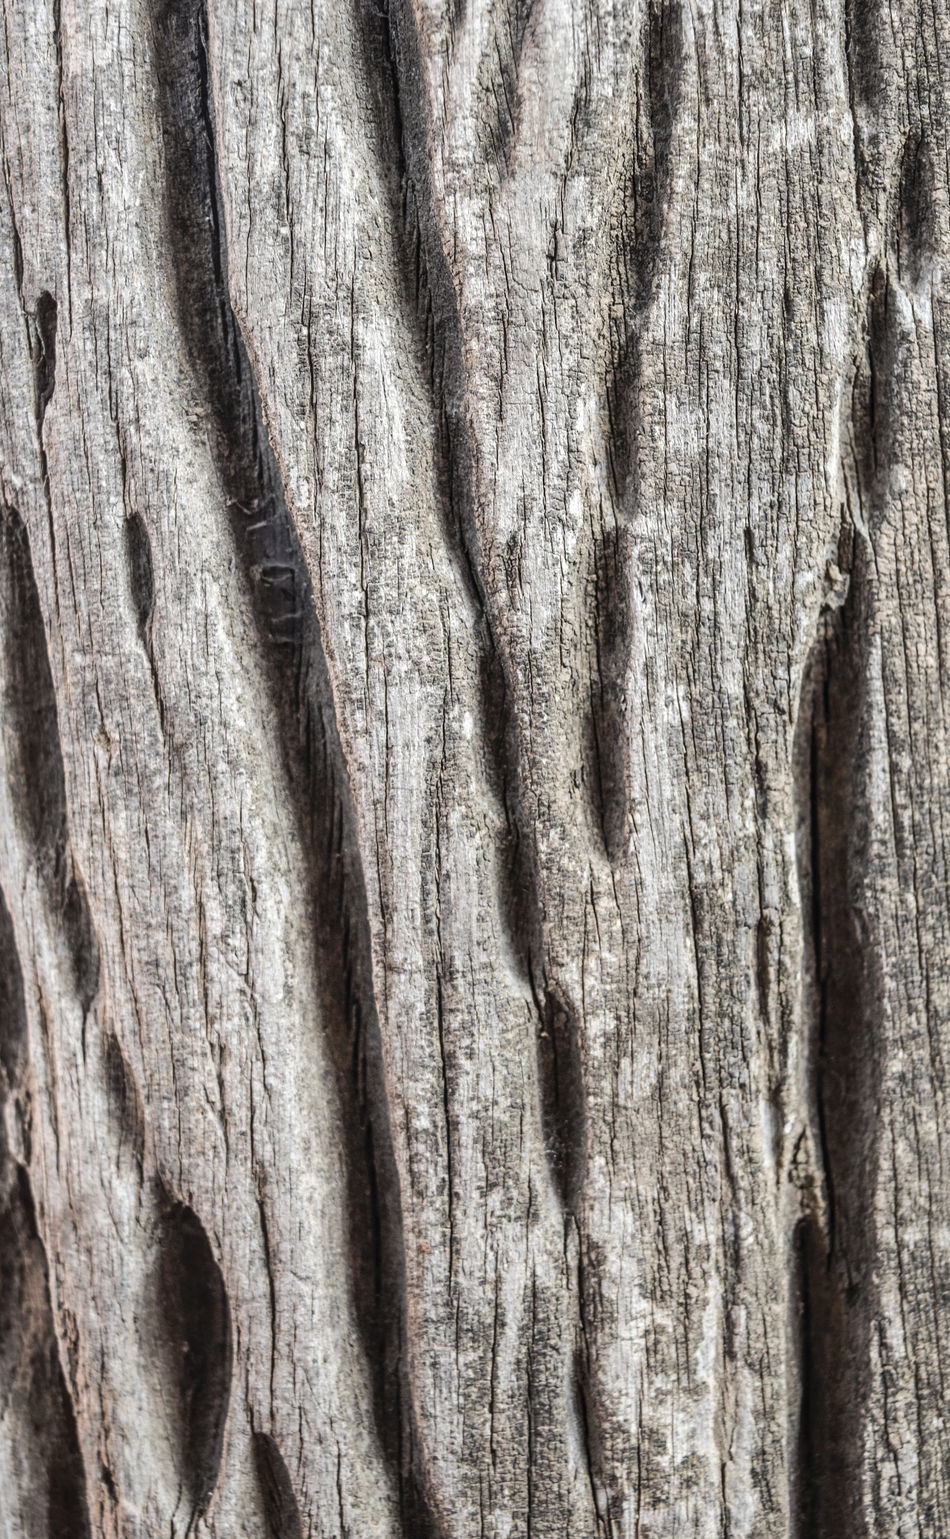 Backgrounds Bark Close-up Cracked Day Full Frame Hardwood Knotted Wood Nature No People Outdoors Pattern Rough Textured  Timber Tree Tree Trunk Weathered Wood - Material Wood Grain